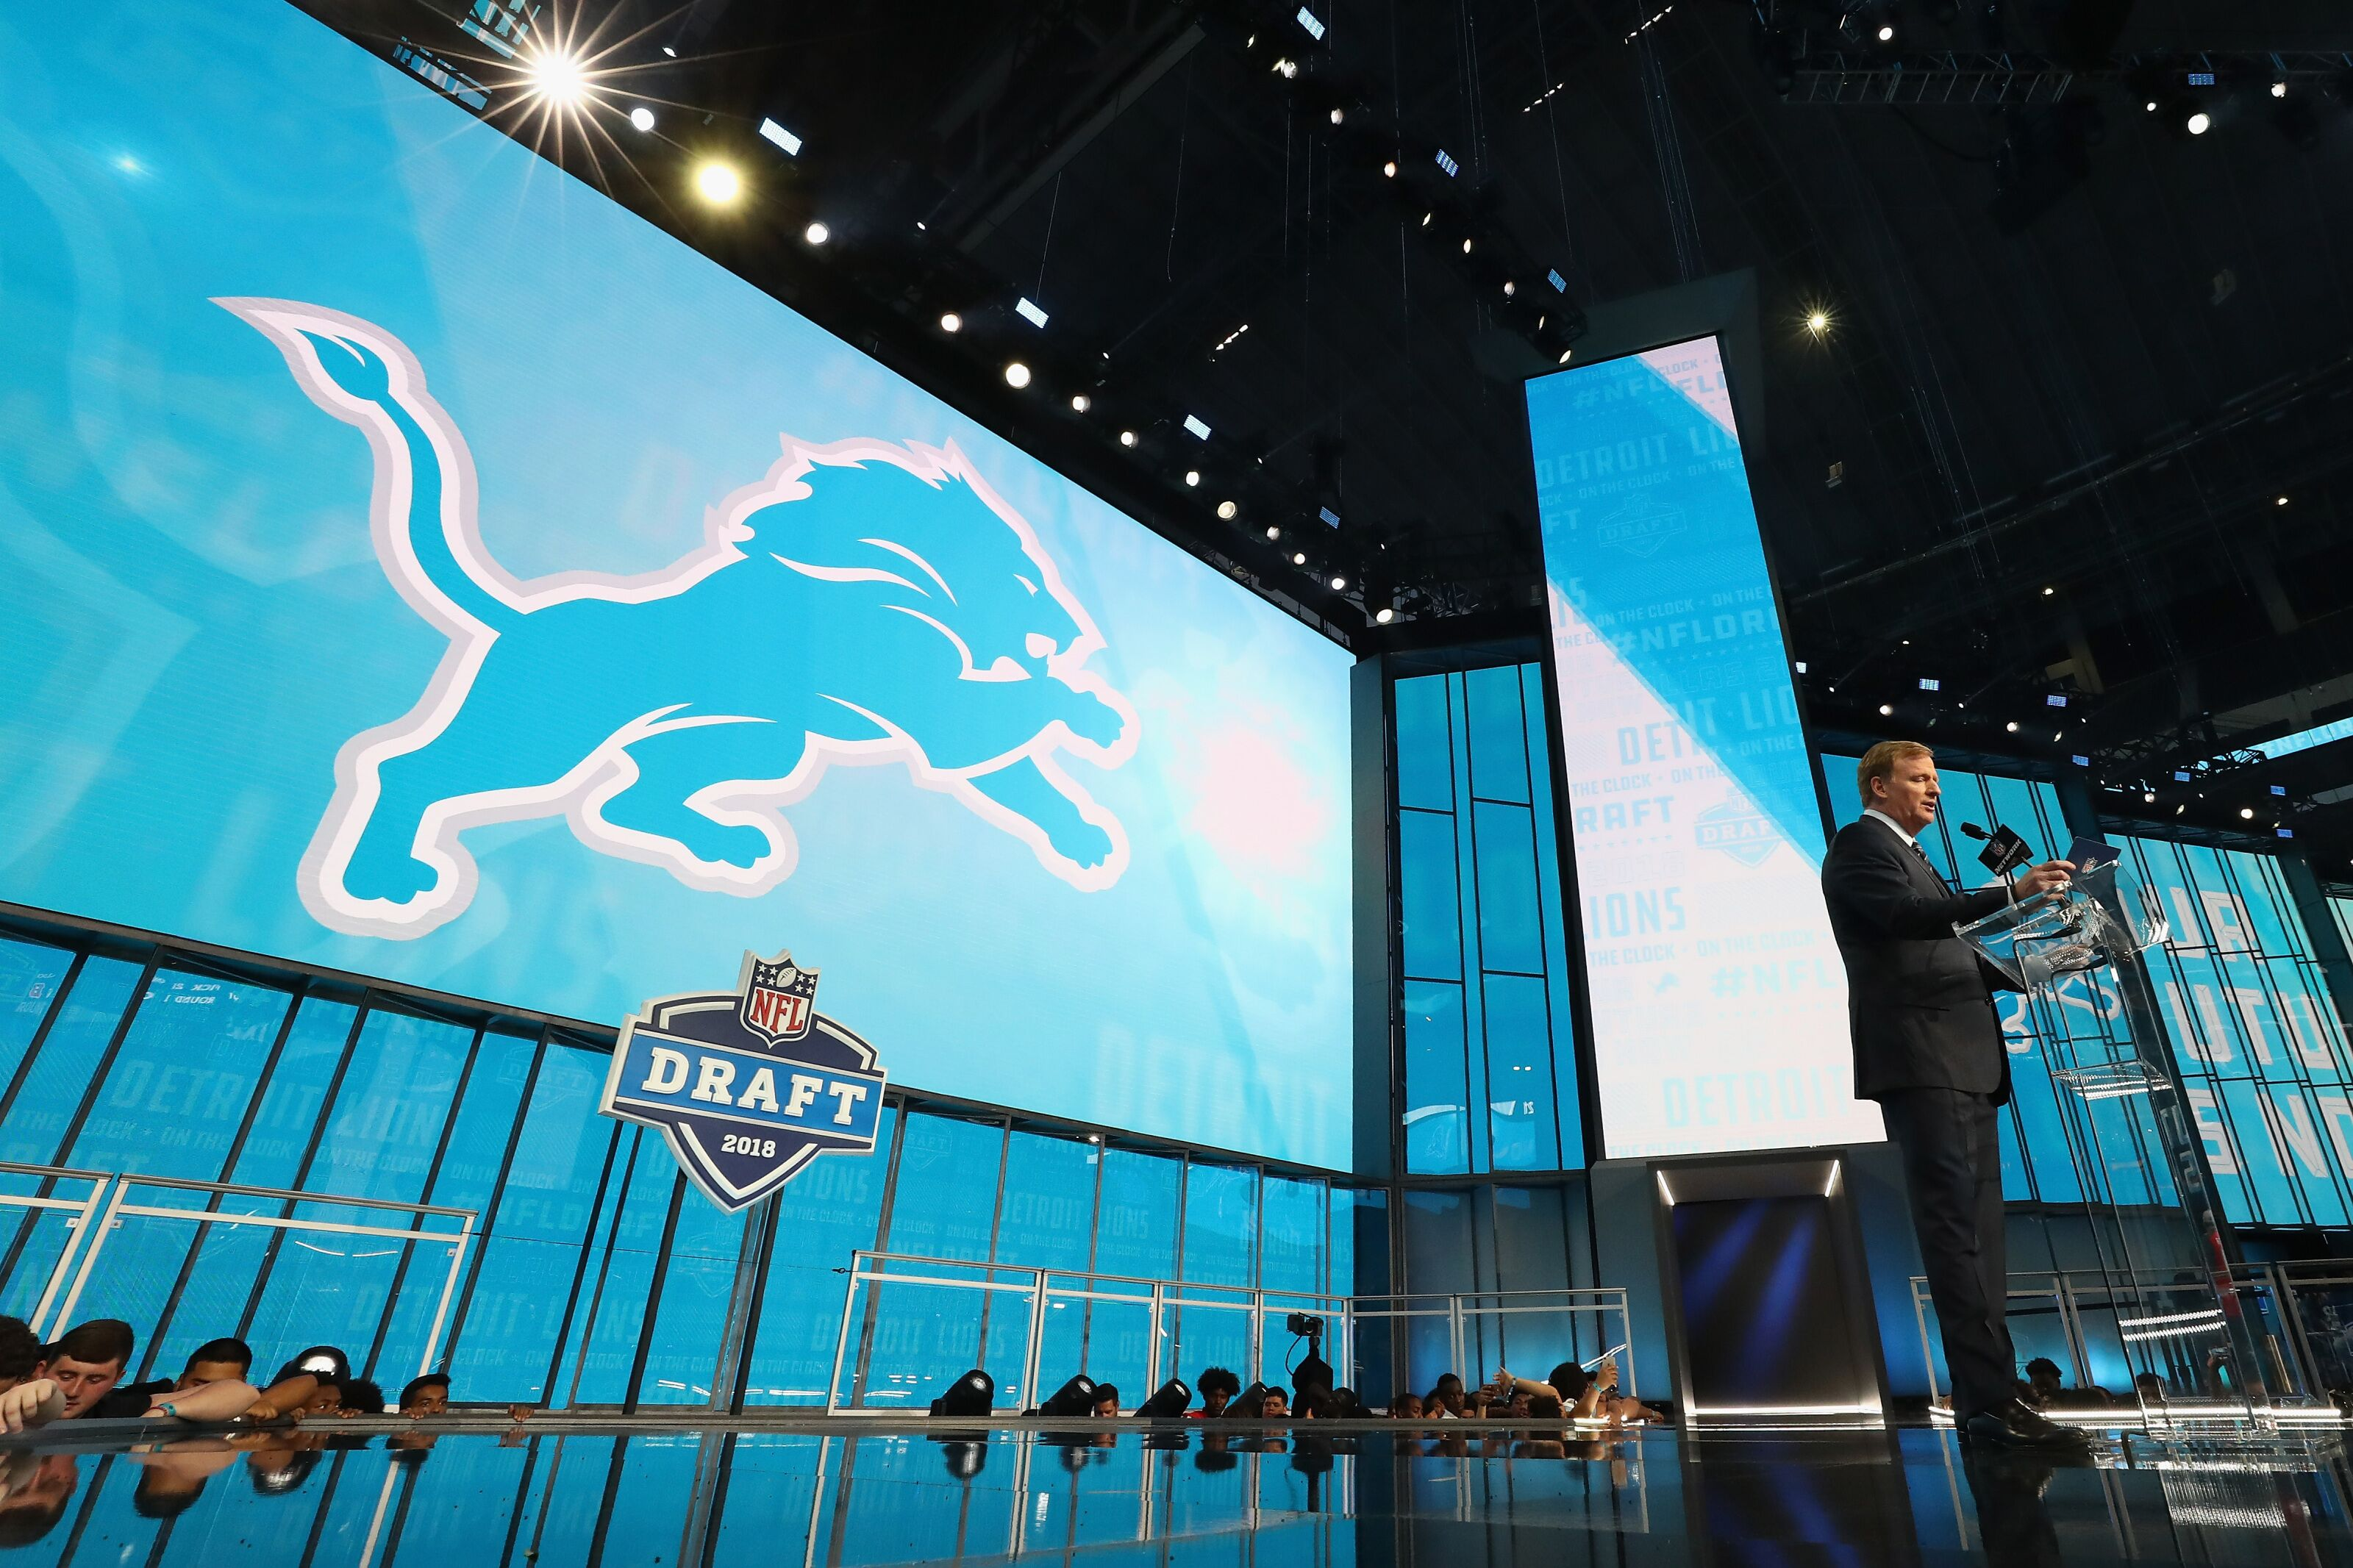 What do the Detroit Lions have to do to host an NFL draft?